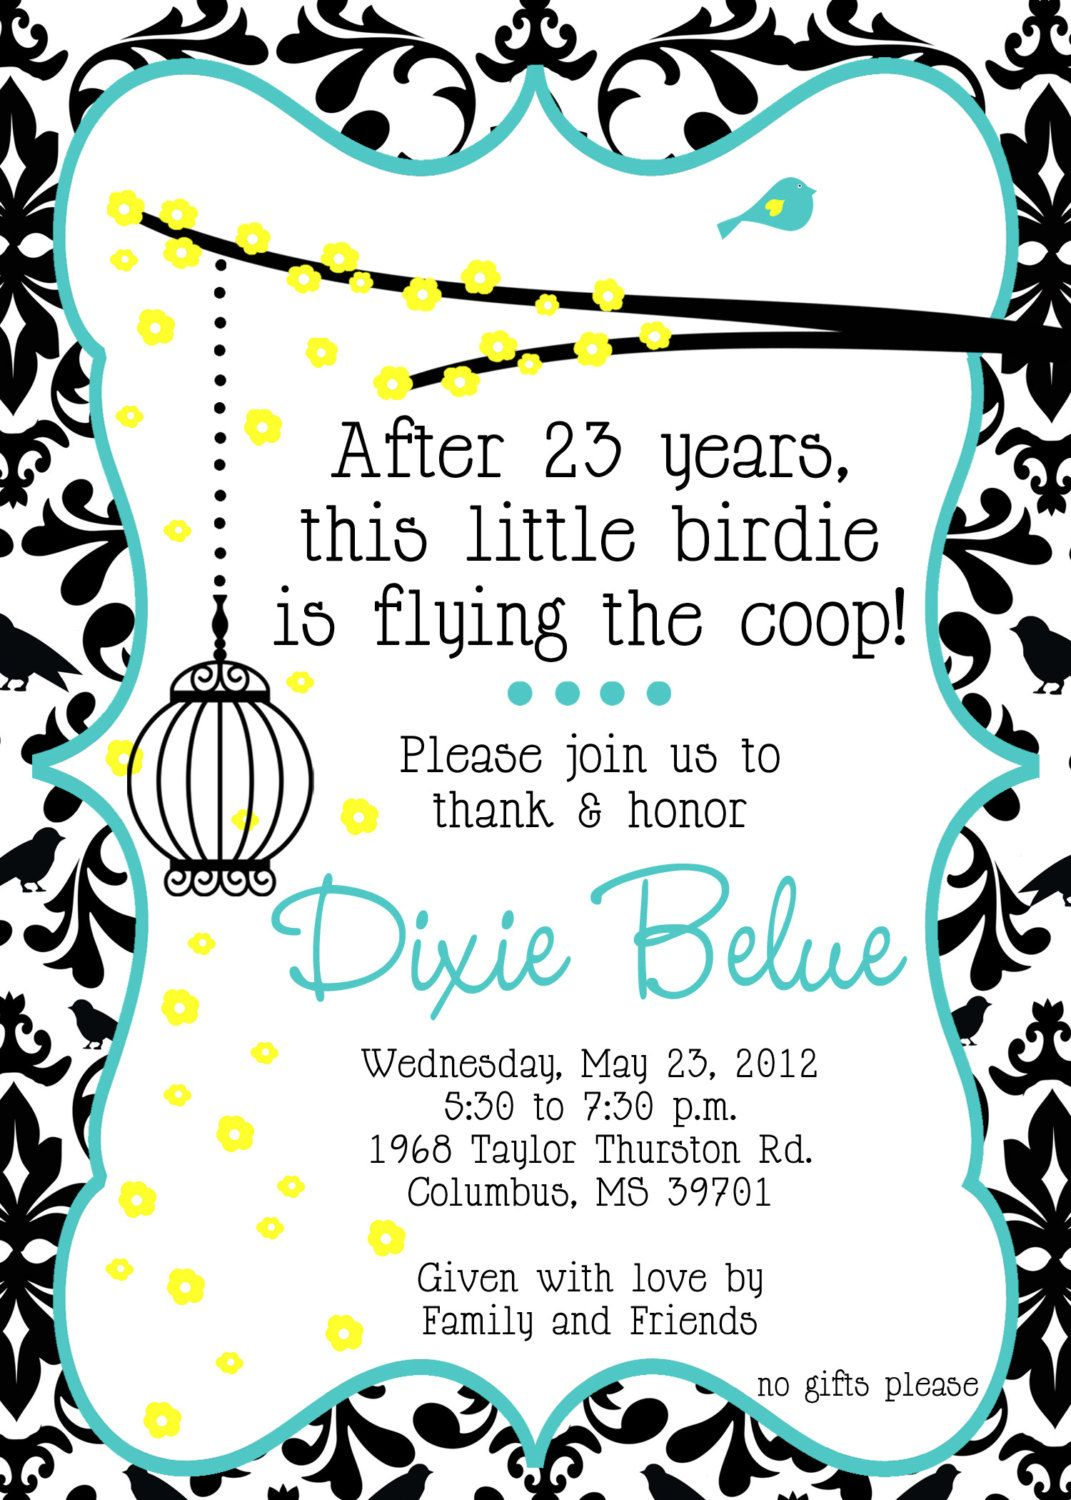 5x7 custom retirement party invitation jpeg file